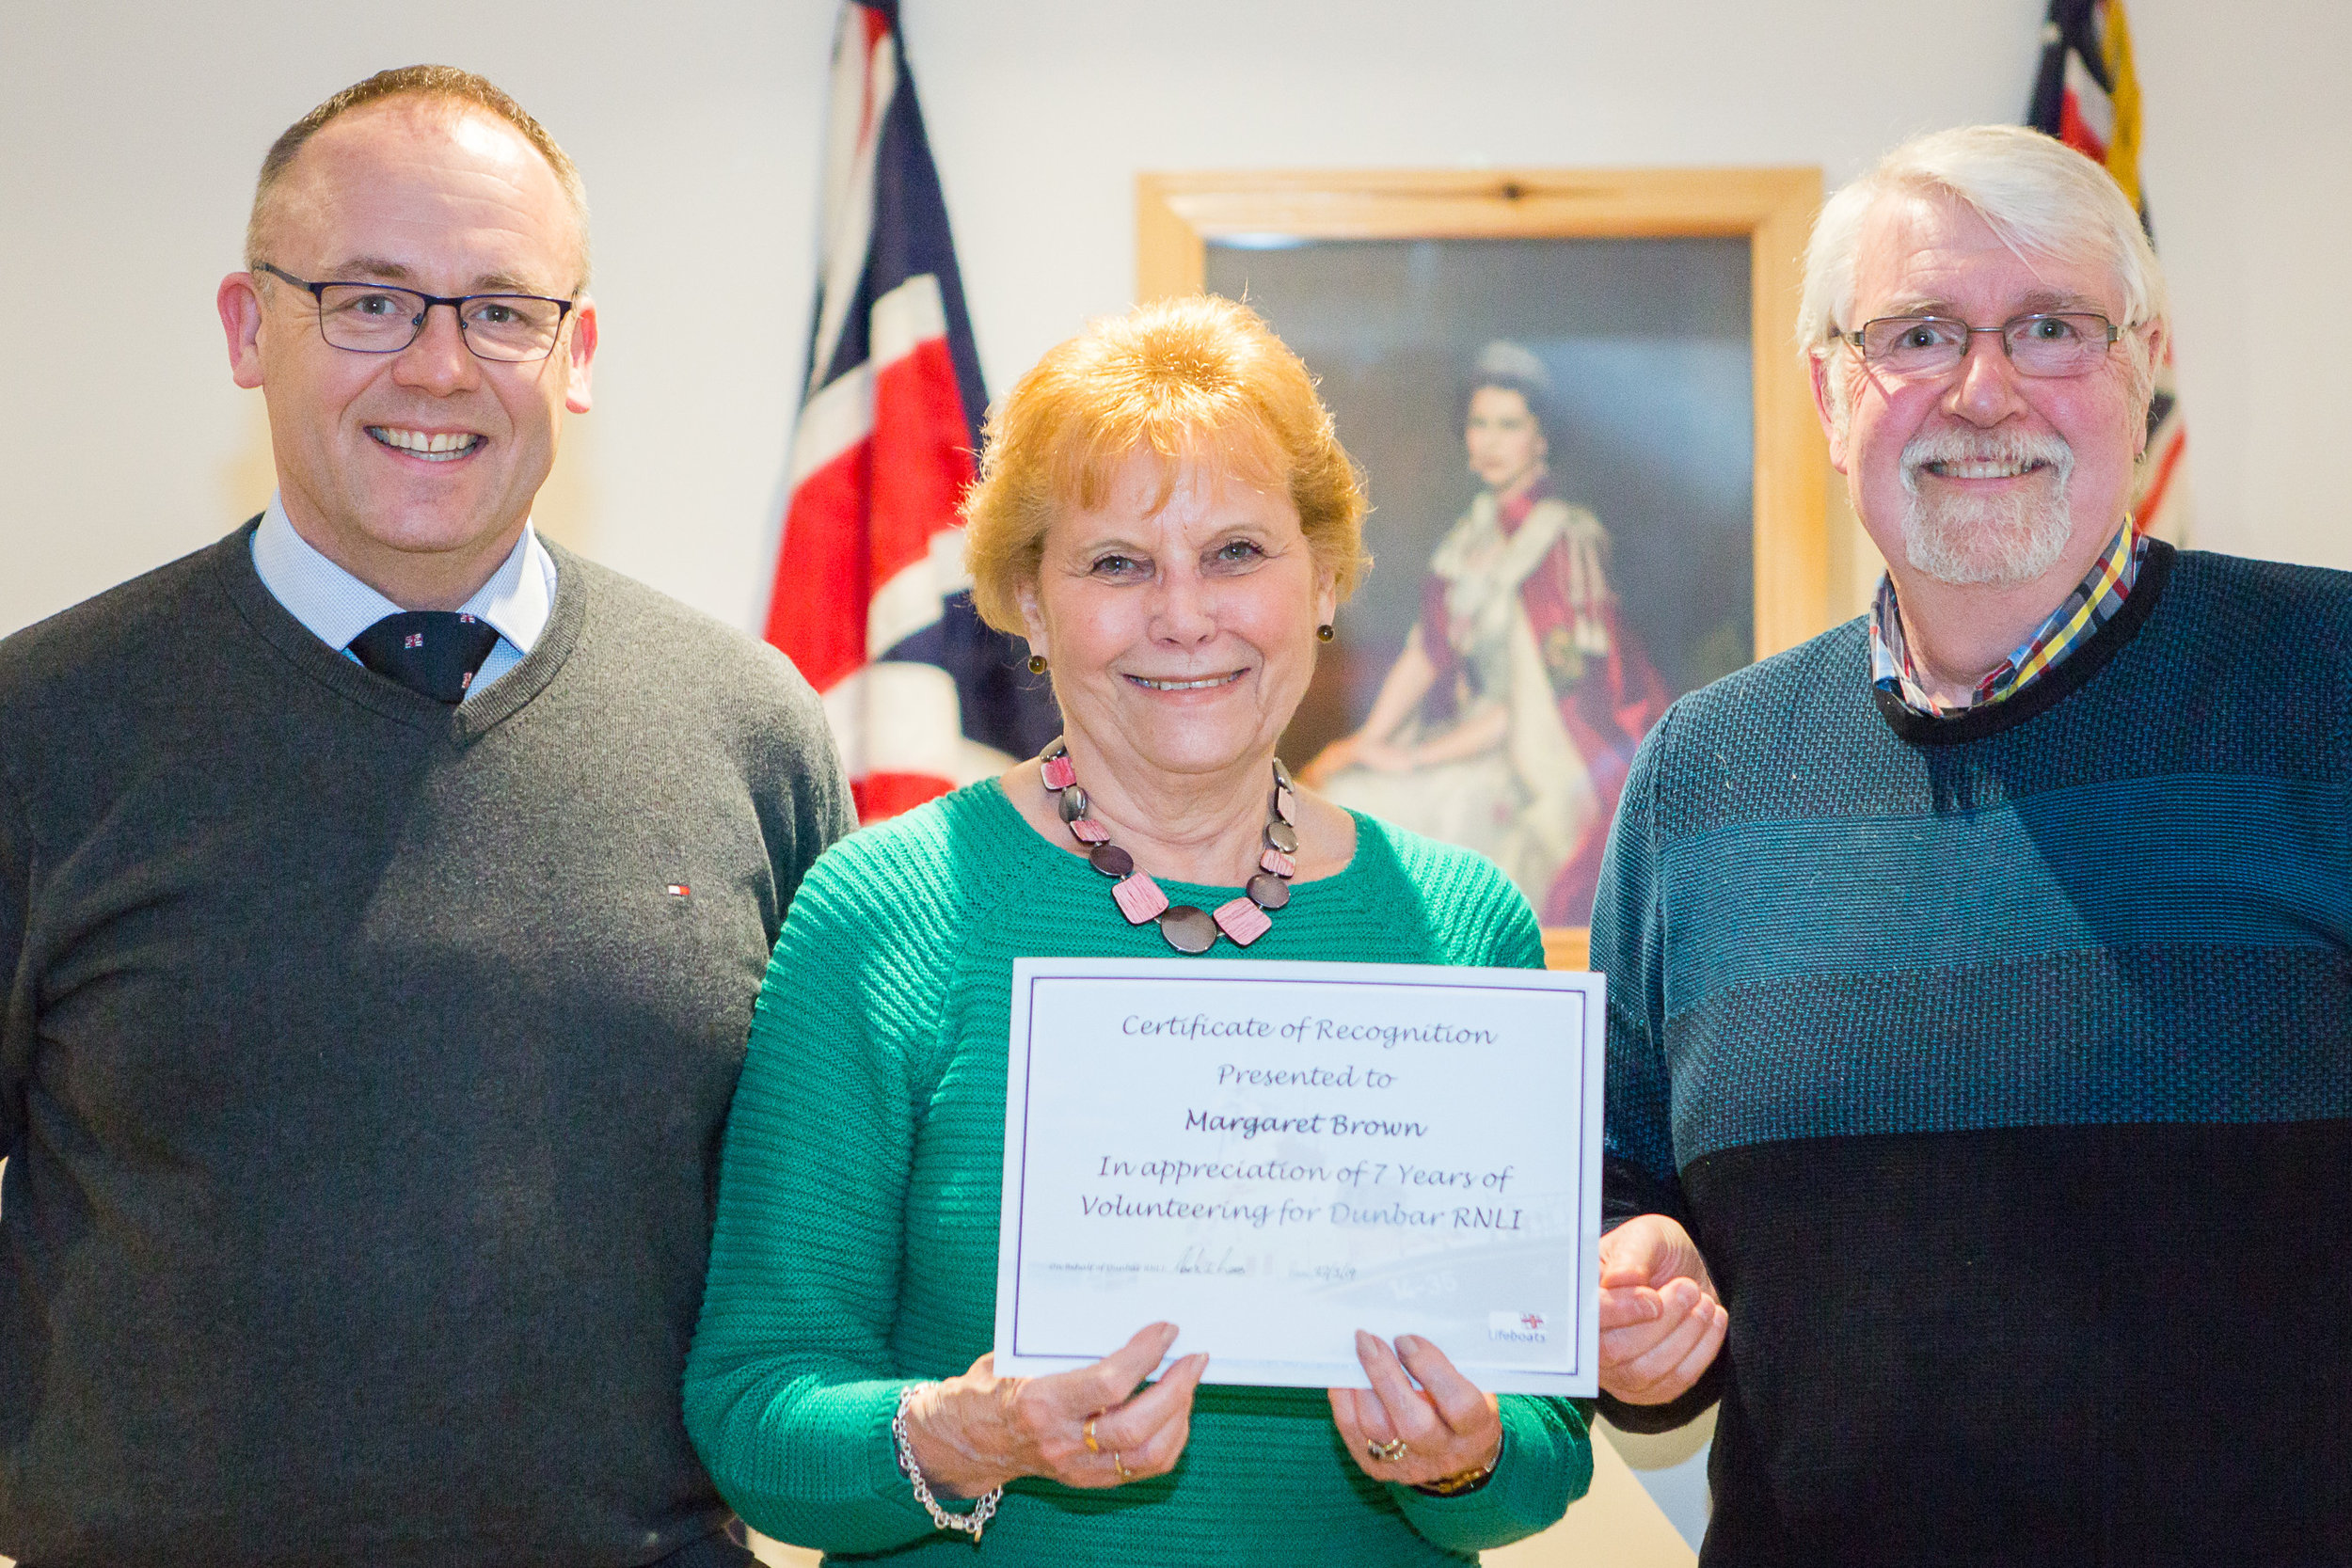 Margaret Brown (7 years service - shop volunteer), with Mark Lees and Ken Headley